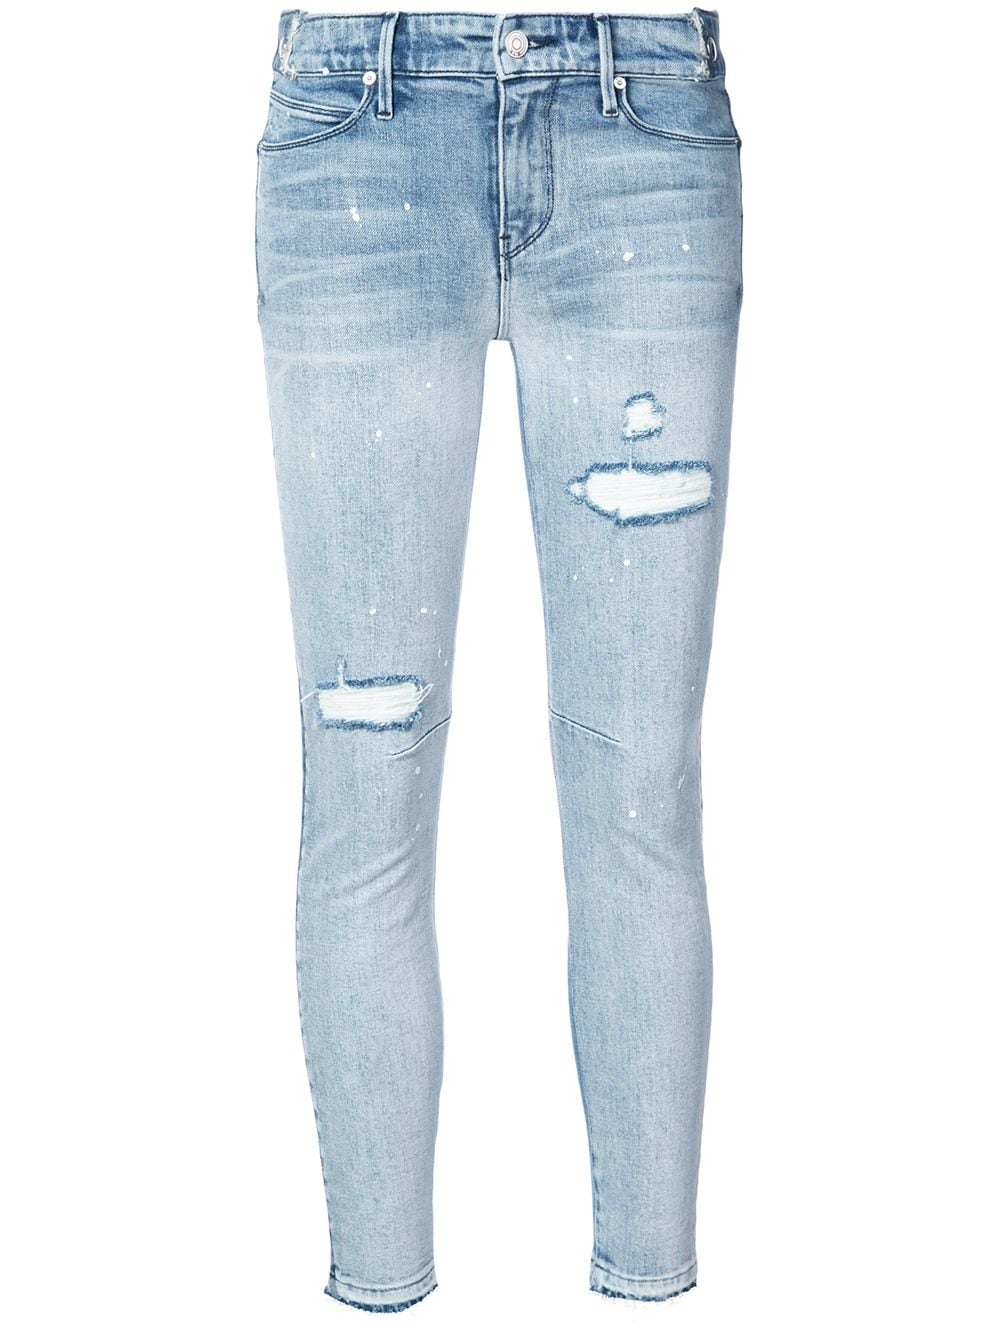 be2c178eff1 RtA distressed skinny jeans - Blue in 2019 | Products | Distressed ...